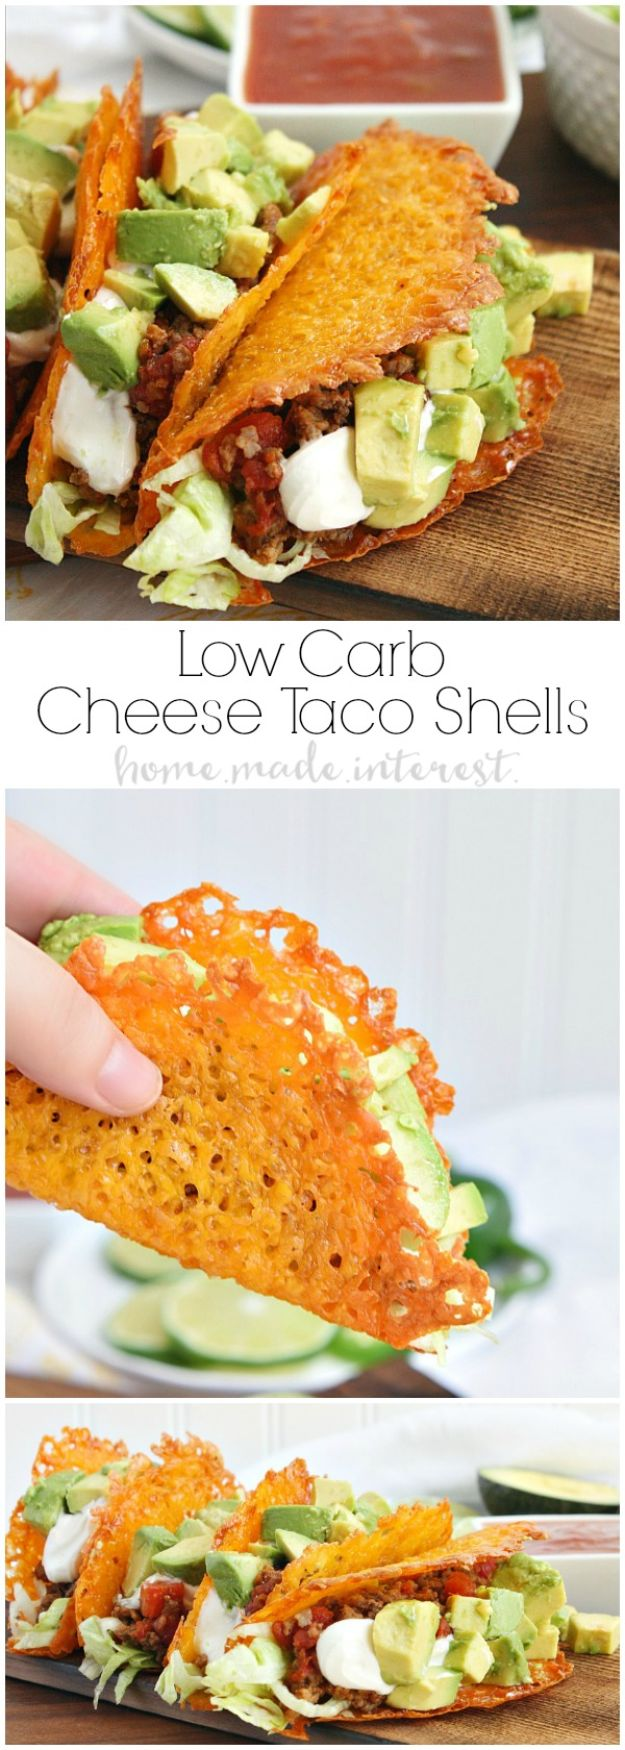 Best Keto Recipes - Low Carb Taco - Easy Ketogenic Recipe Ideas for Breakfast, Lunch, Dinner, Snack and Dessert - Quick Crockpot Meals, Fat Bombs, Gluten Free and Low Carb Foods To Make For The Keto Diet #keto #ketorecipes #ketodiet